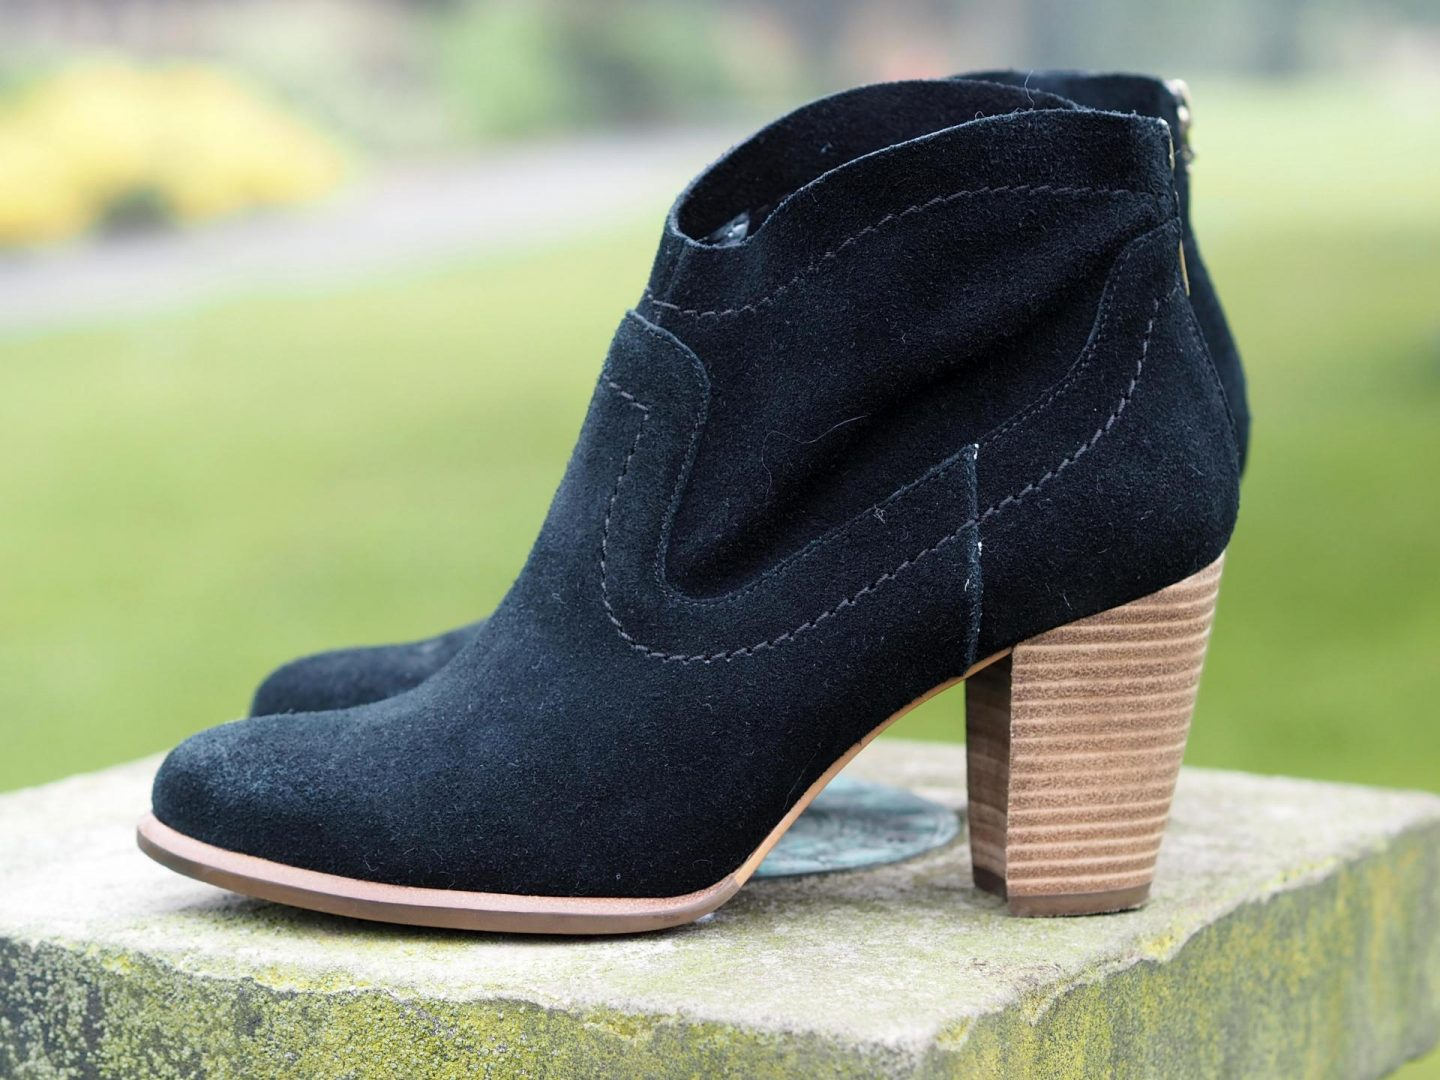 Seven Shoes in my Summer Shoedrobe - Rachel Nicole UK Style Blogger 5